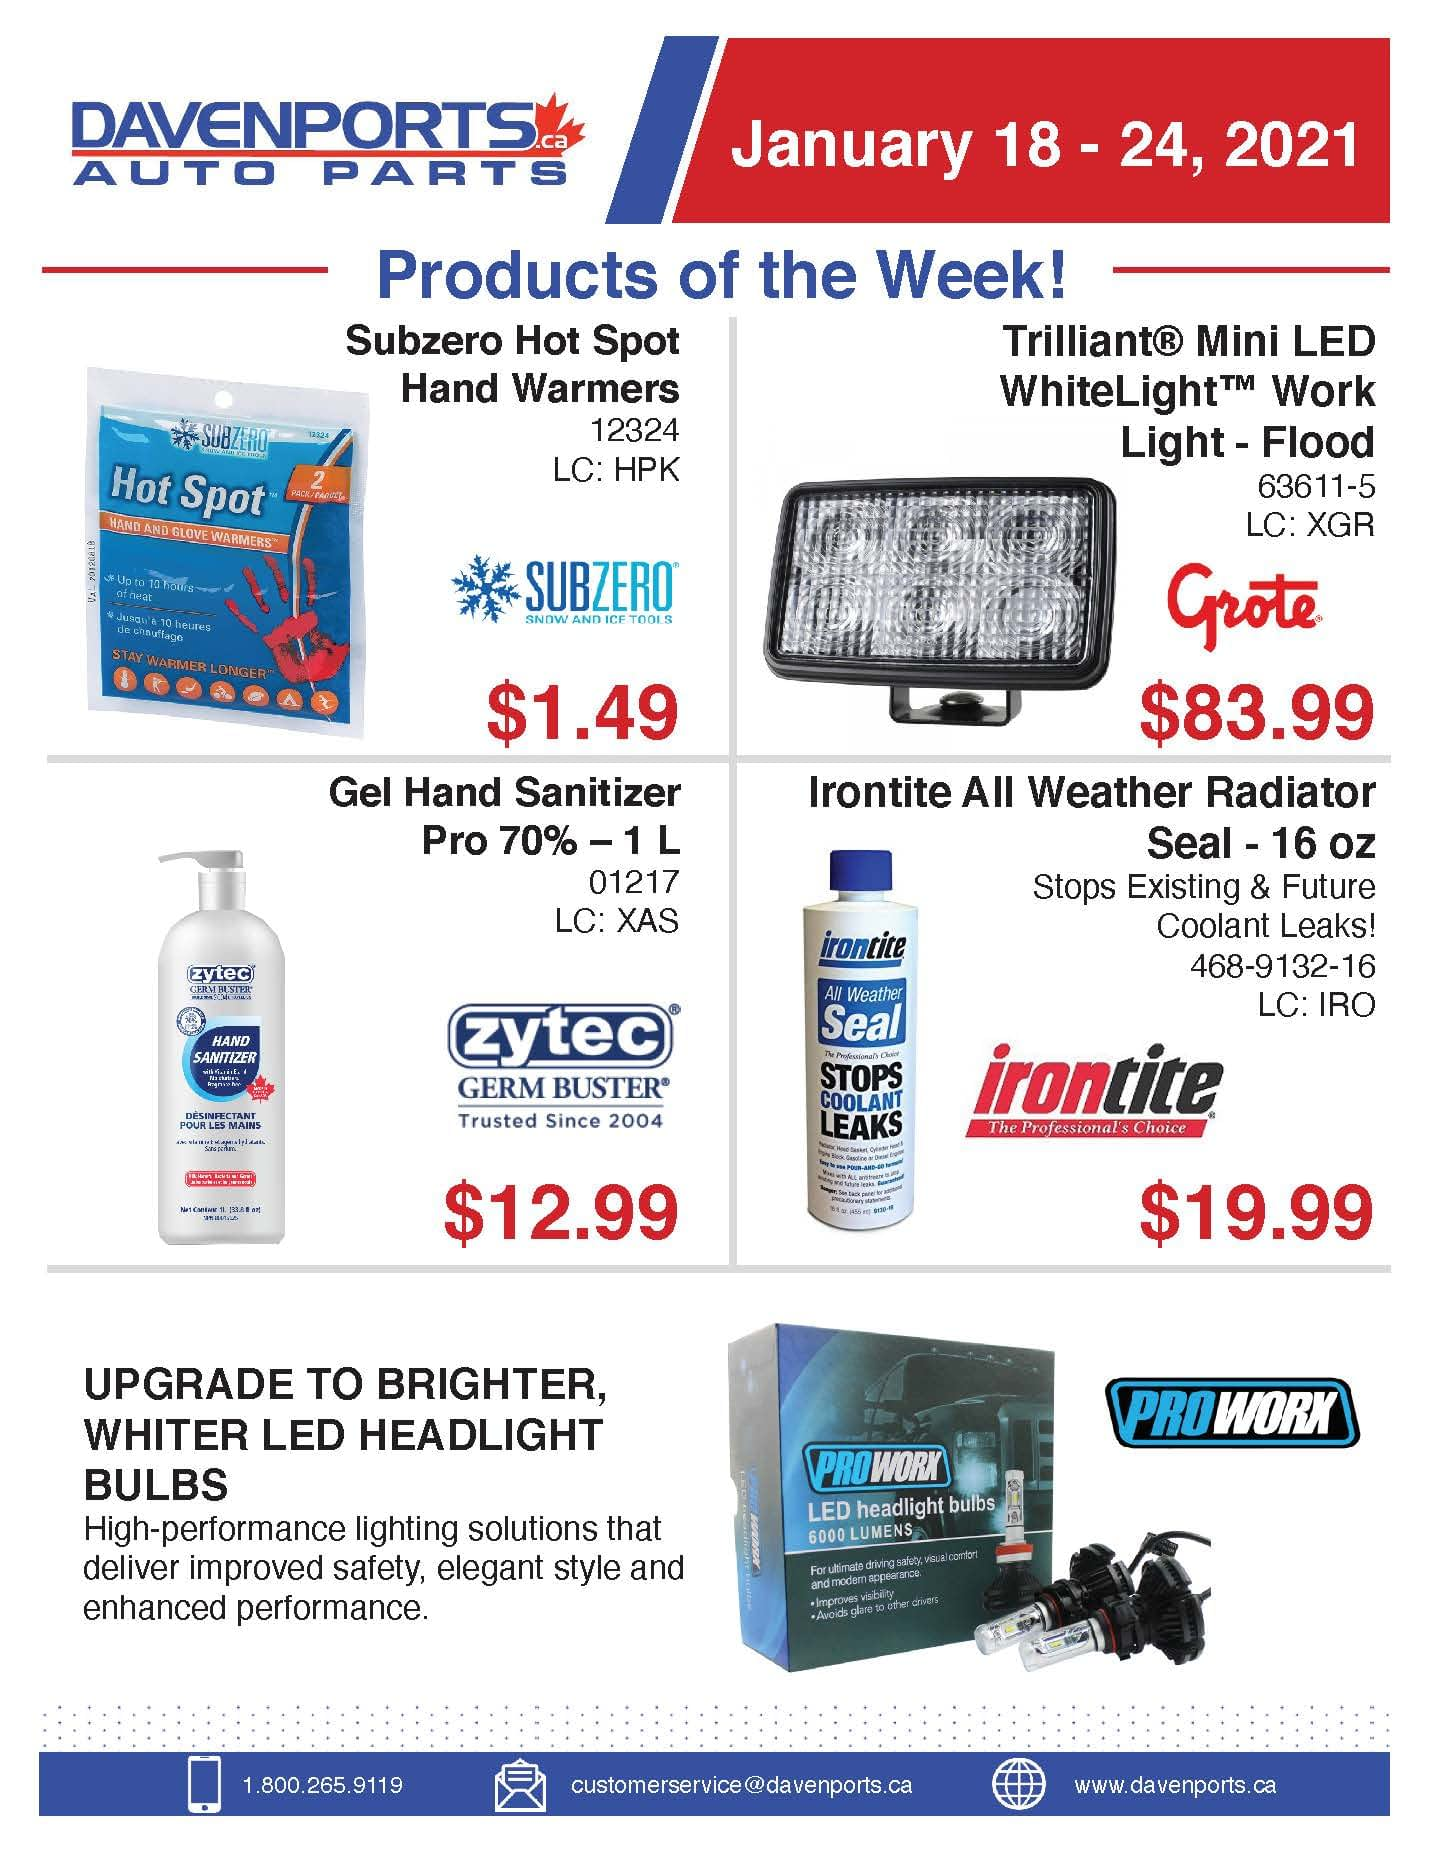 Products of the Week January 18 - 24, 2021